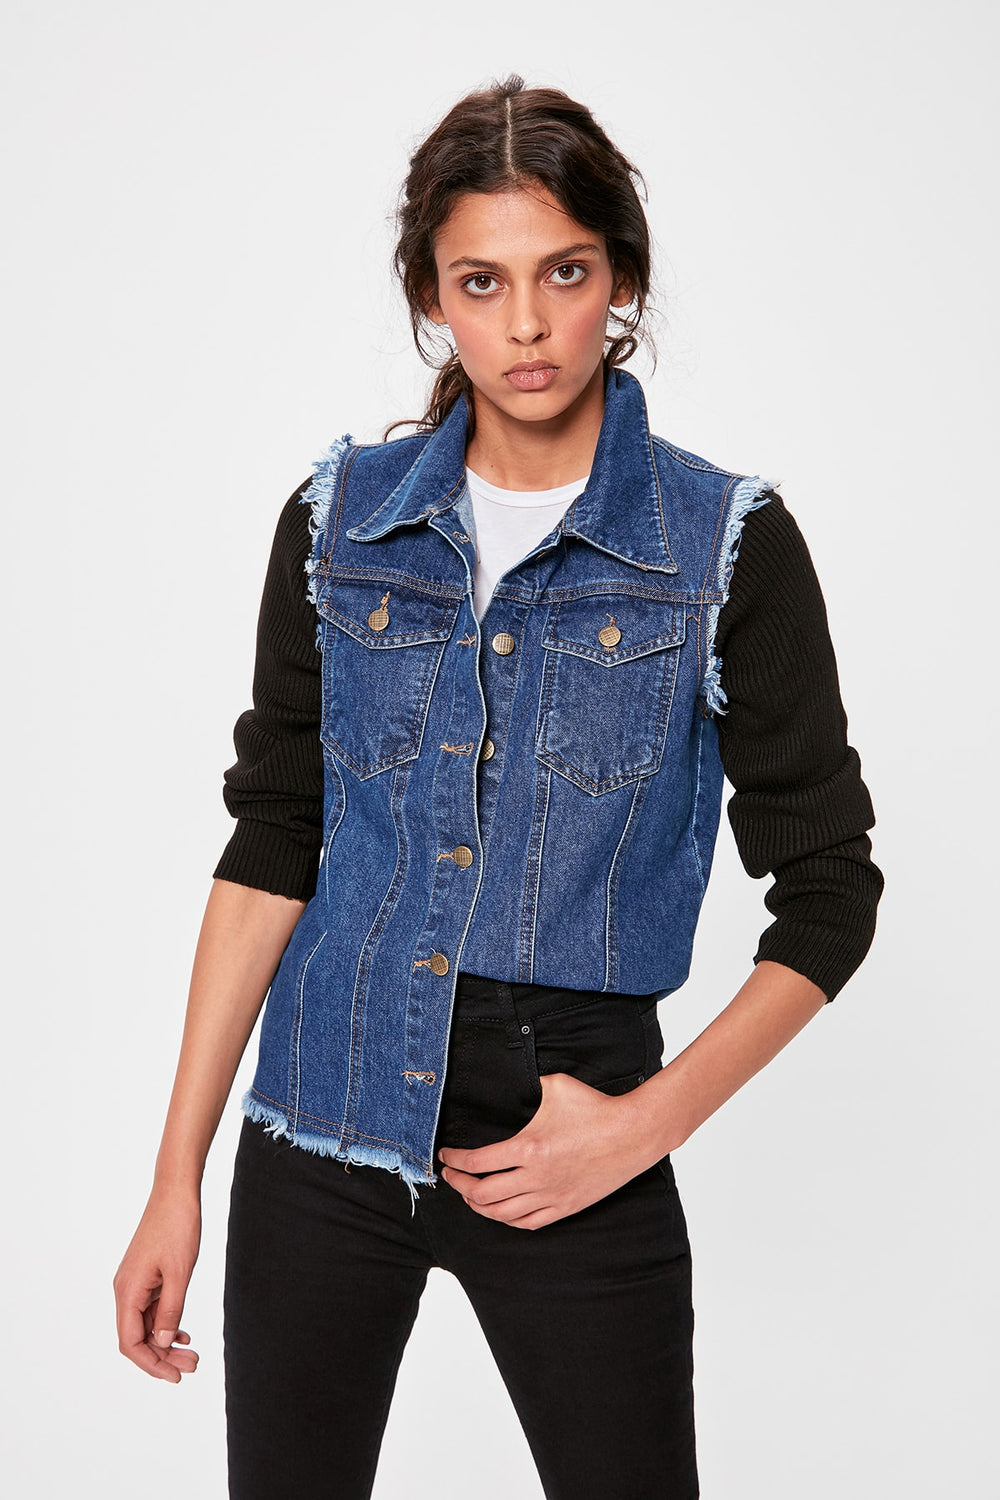 Miss Zut Miss Zut Black Handles Sweater Denim Jacket Miss Zut &CO